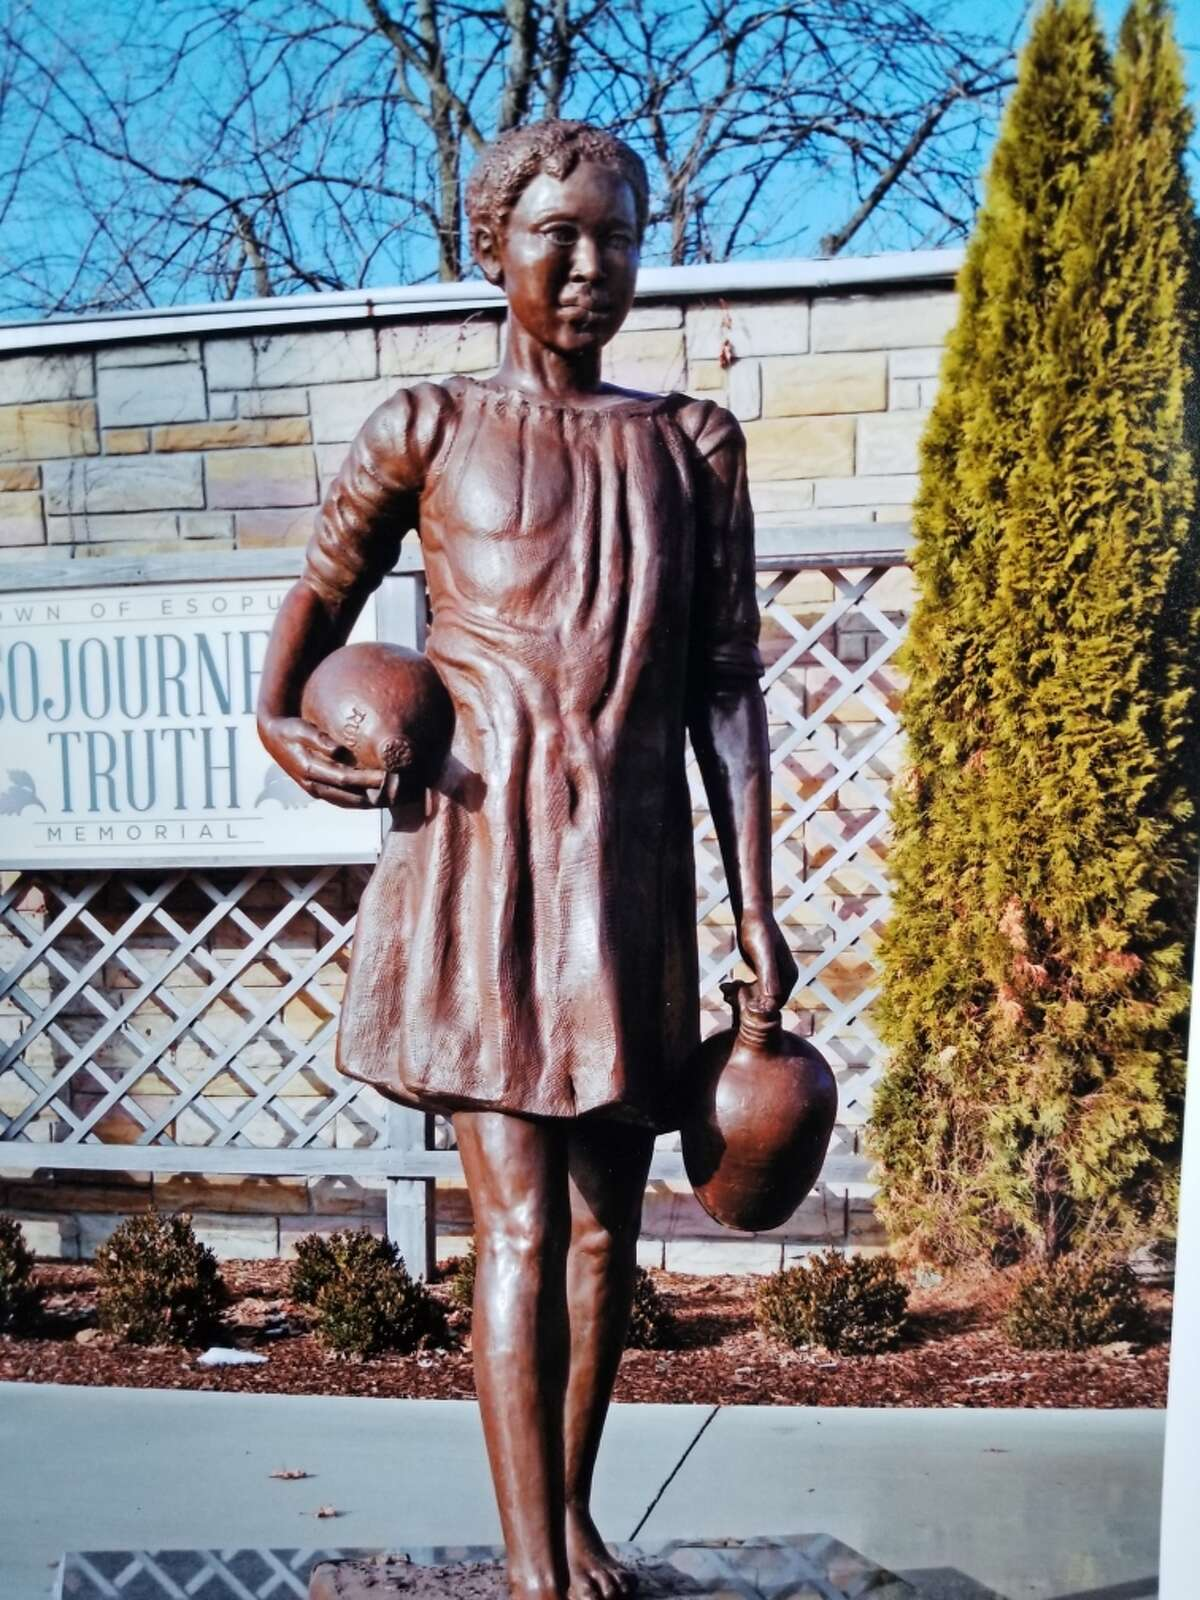 A 4-mile walk in Ulster County illuminates the life of Black abolitionist and women's rights pioneer Sojourner Truth, who lived her early life in bondage there.